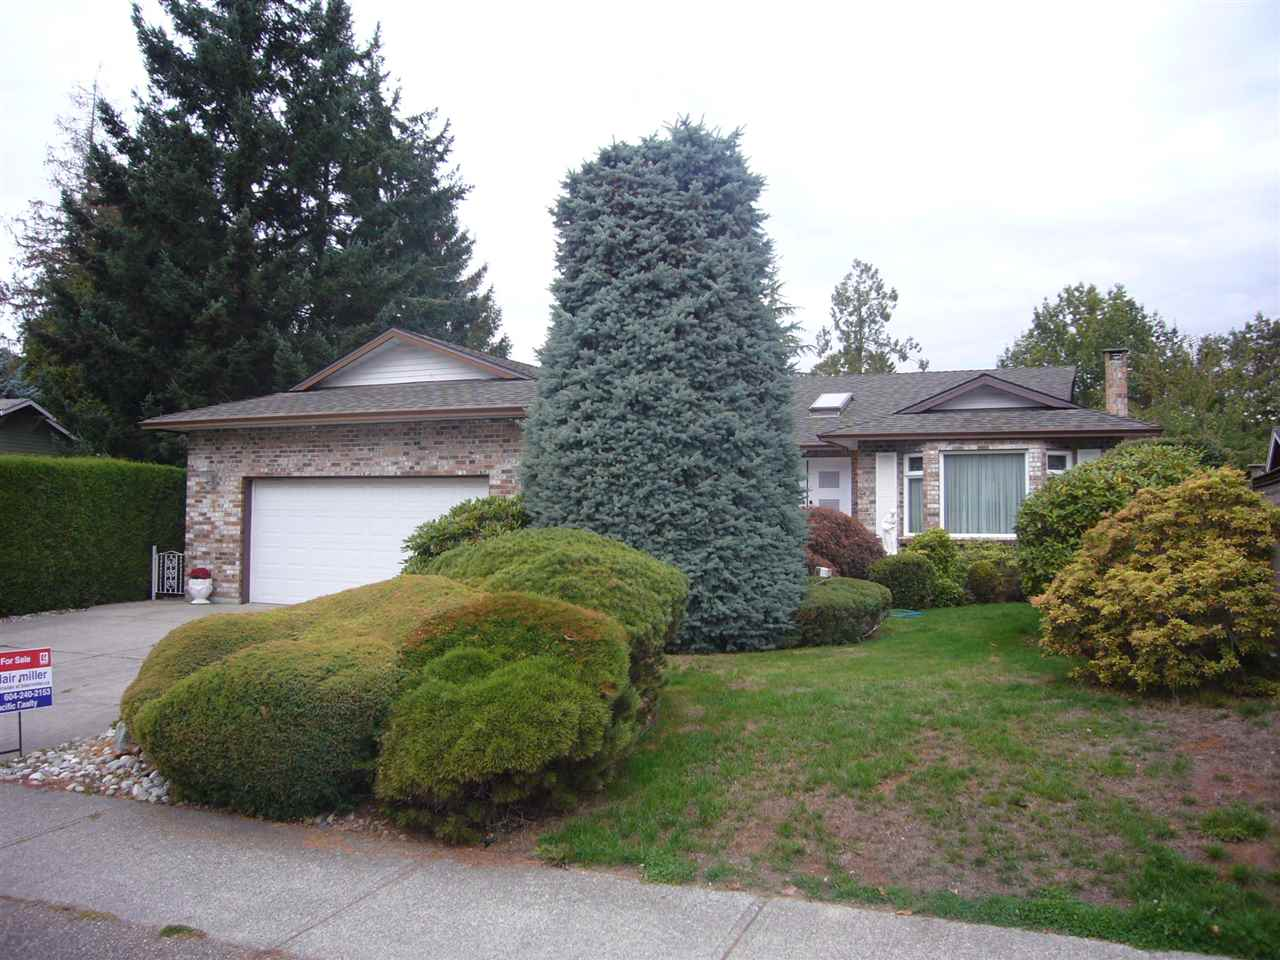 Original owner Southmere 3 bdrm rancher of 1,700 sf. on a full size (7,174 sf lot) backing west, onto parkland. Extremely well maintained since new and all generous room sizes throughout. Great privacy in the lush rear yard. Furnace 12 yrs / HW tank 7 yrs / roof 7 yrs. Oversize double garage. These are becoming a rare find.